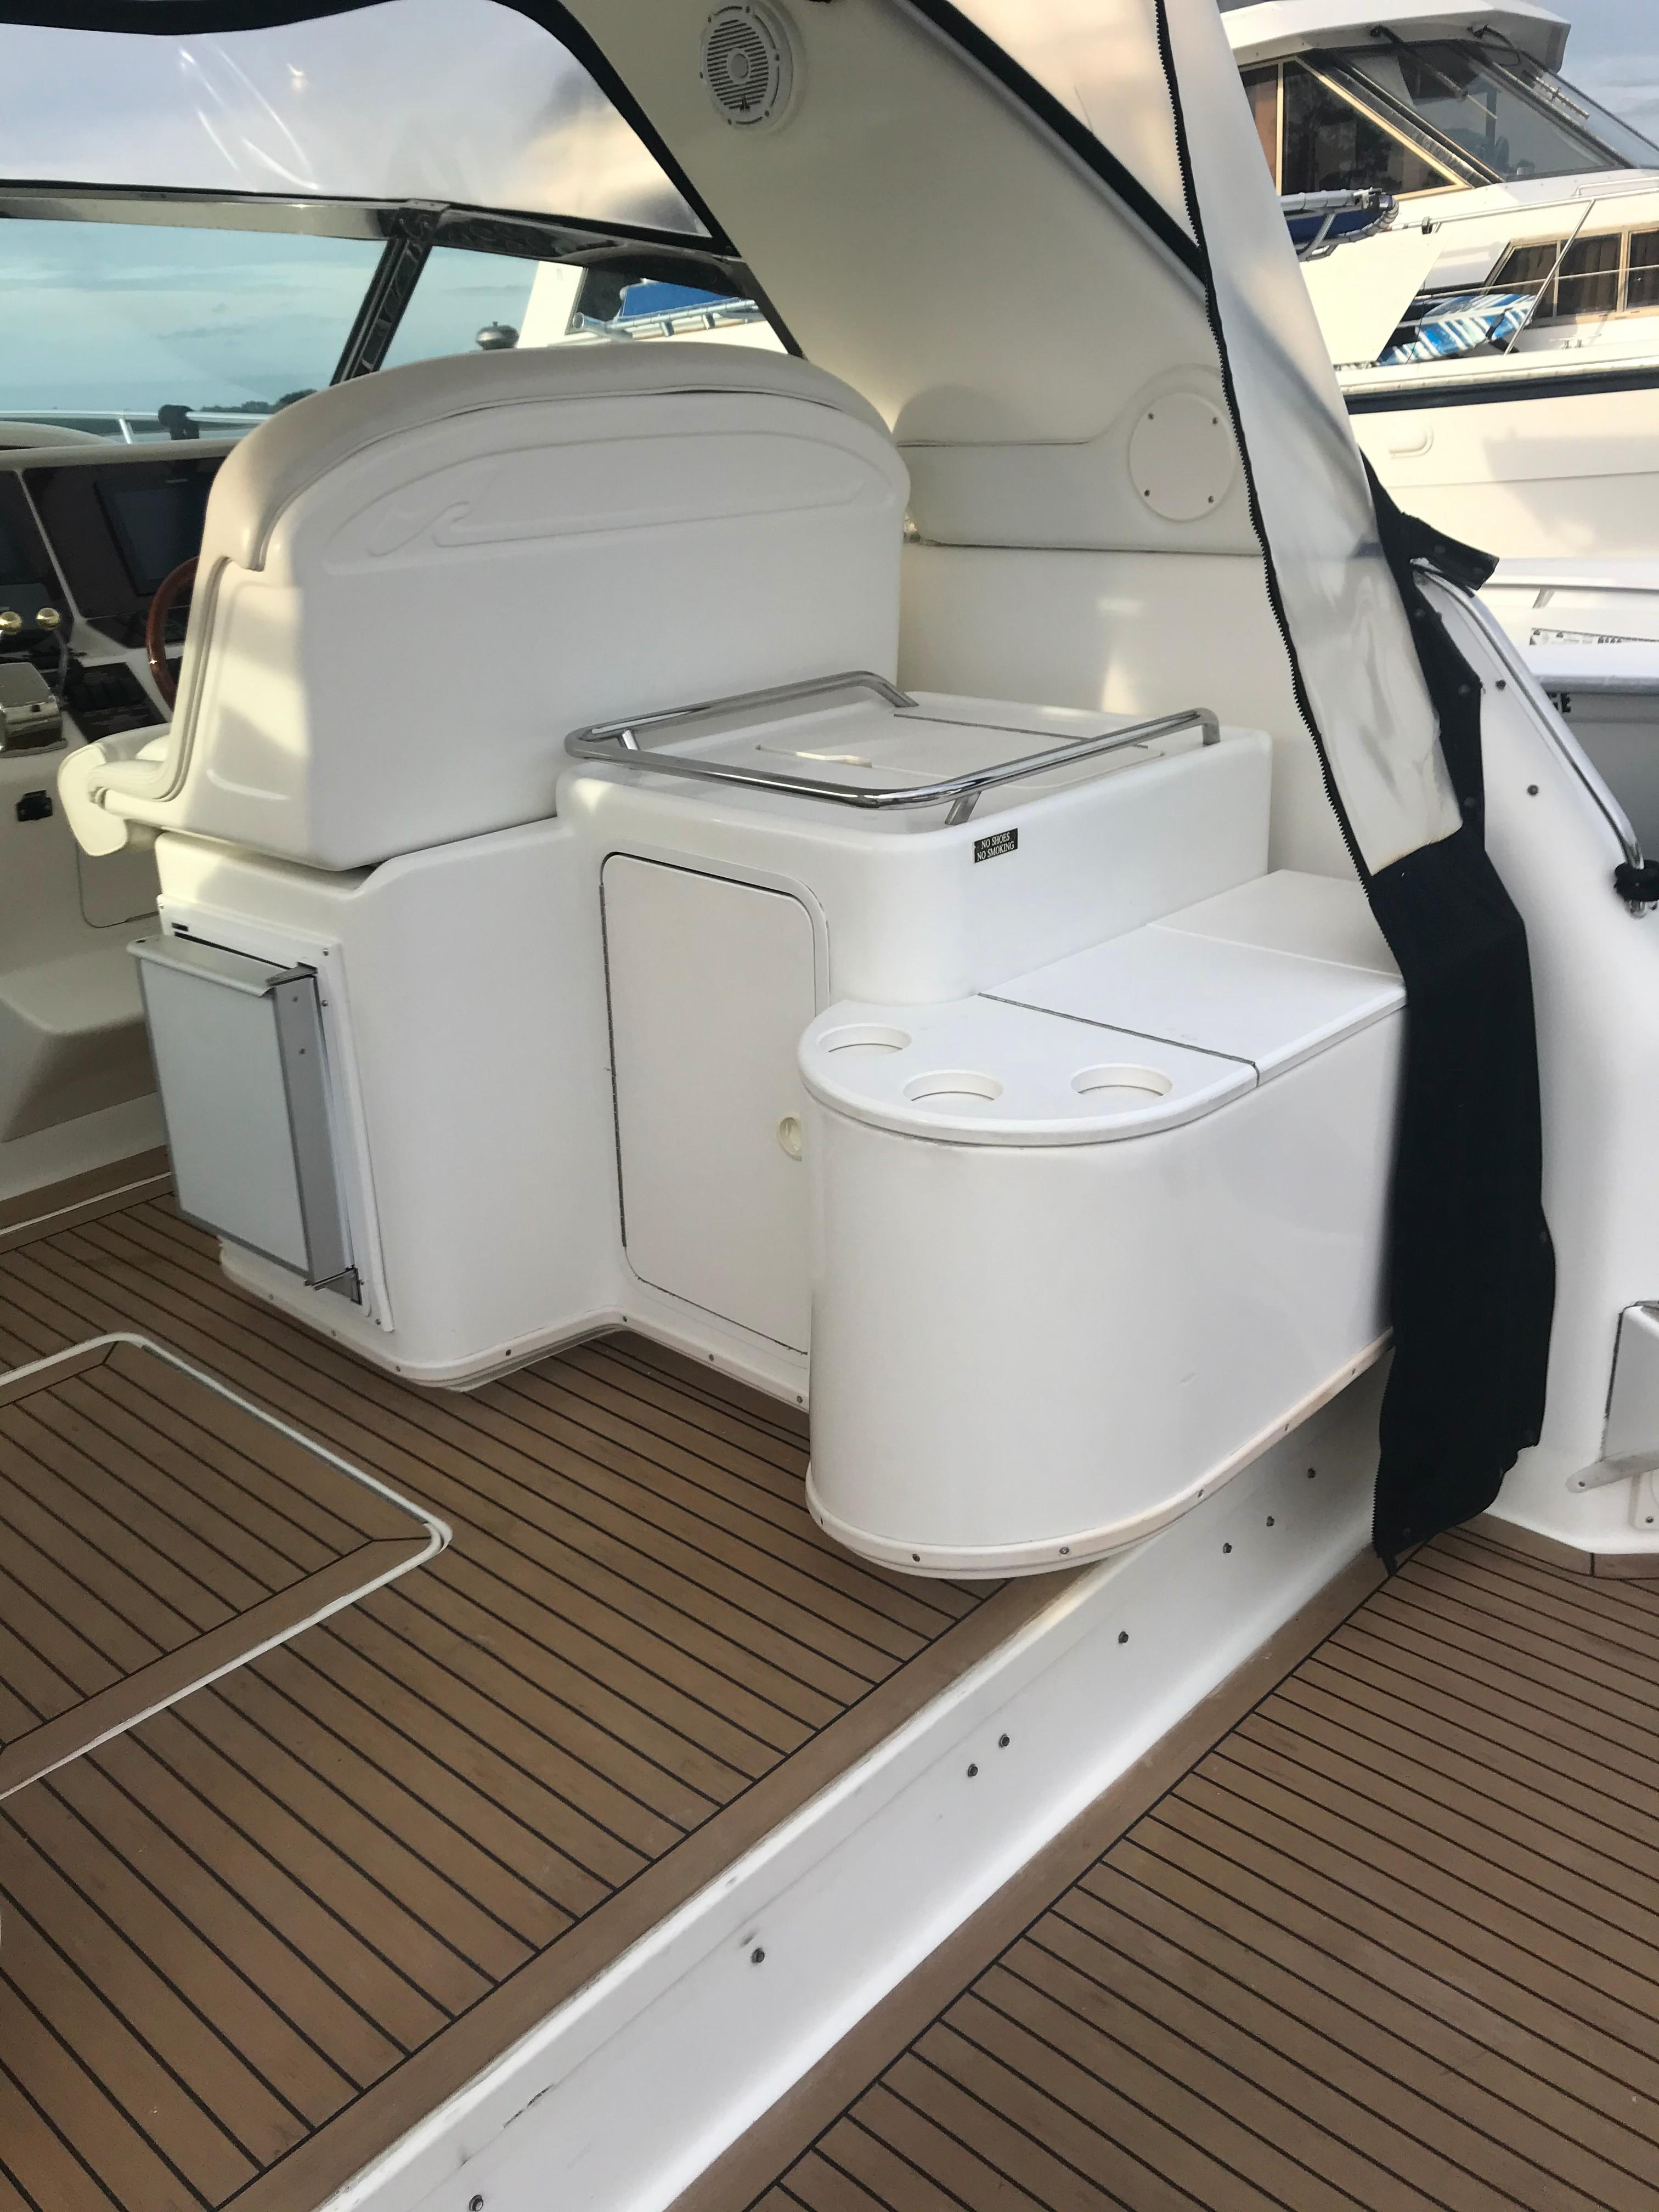 Sea Ray 370 Express Cruiser - Live well/ice cooler/trash chute/wet bar/icemaker